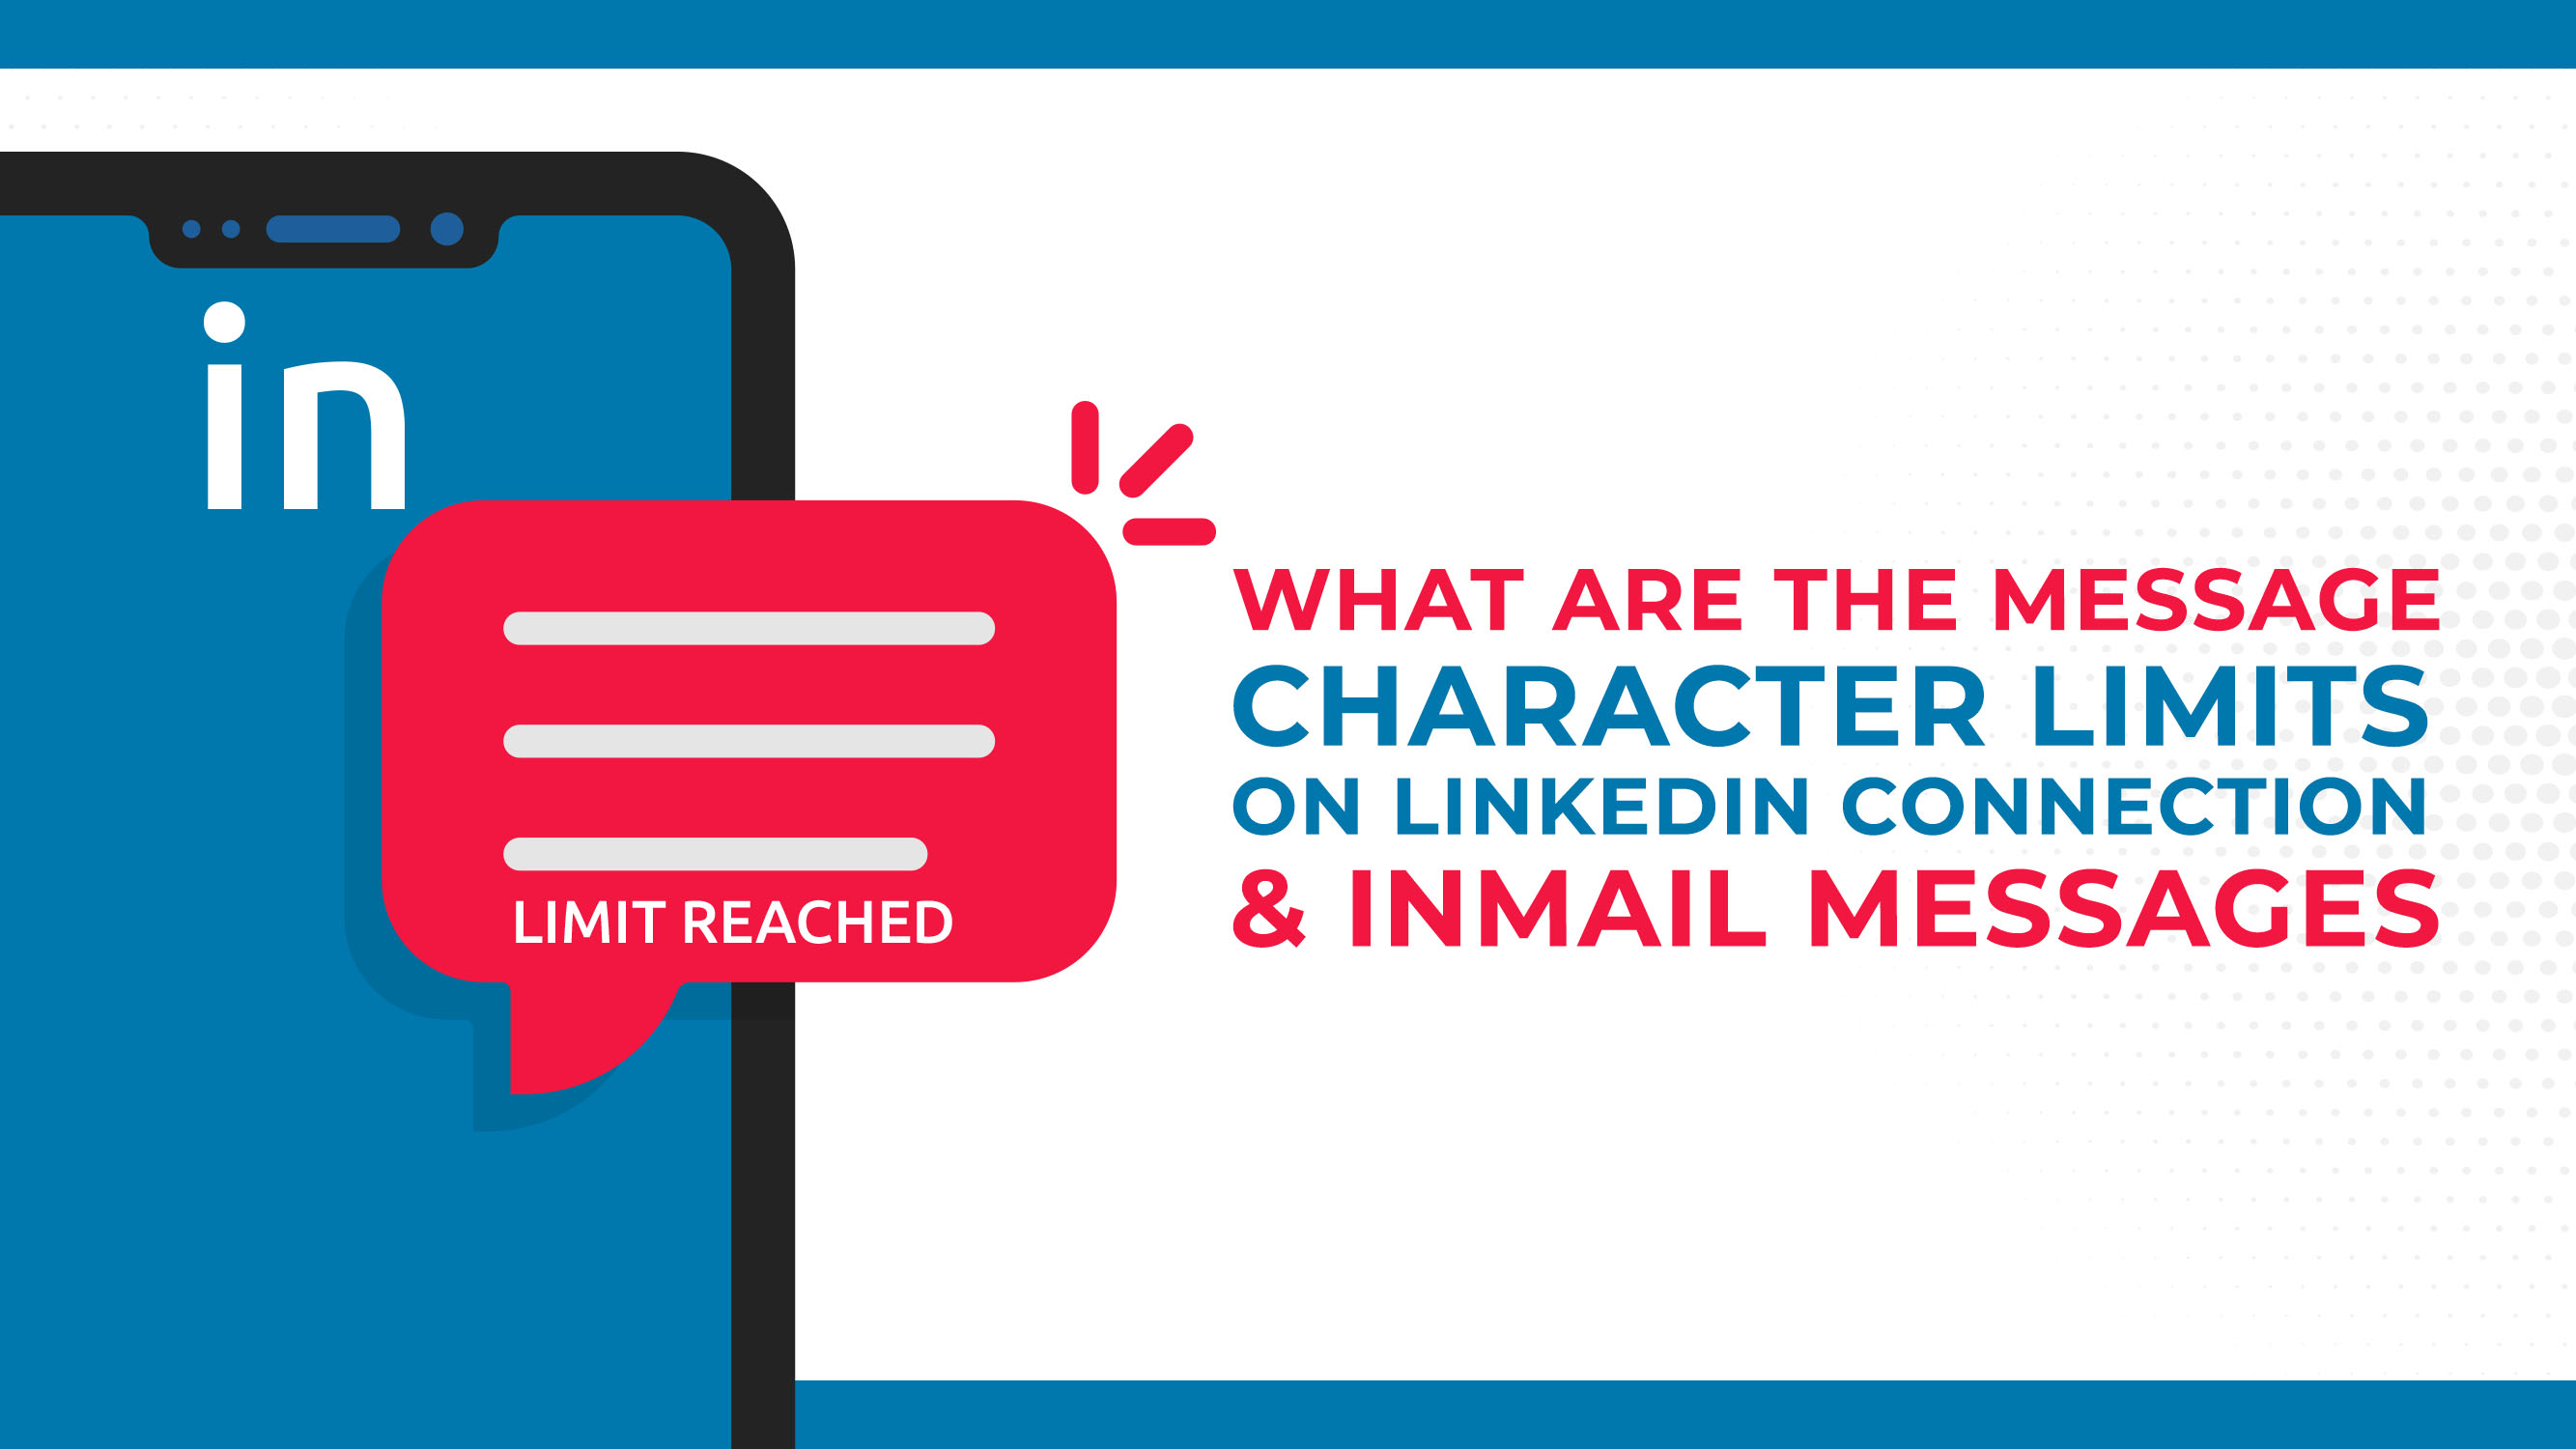 What Are The Message Character Limits On LinkedIn Connection & InMail Messages?